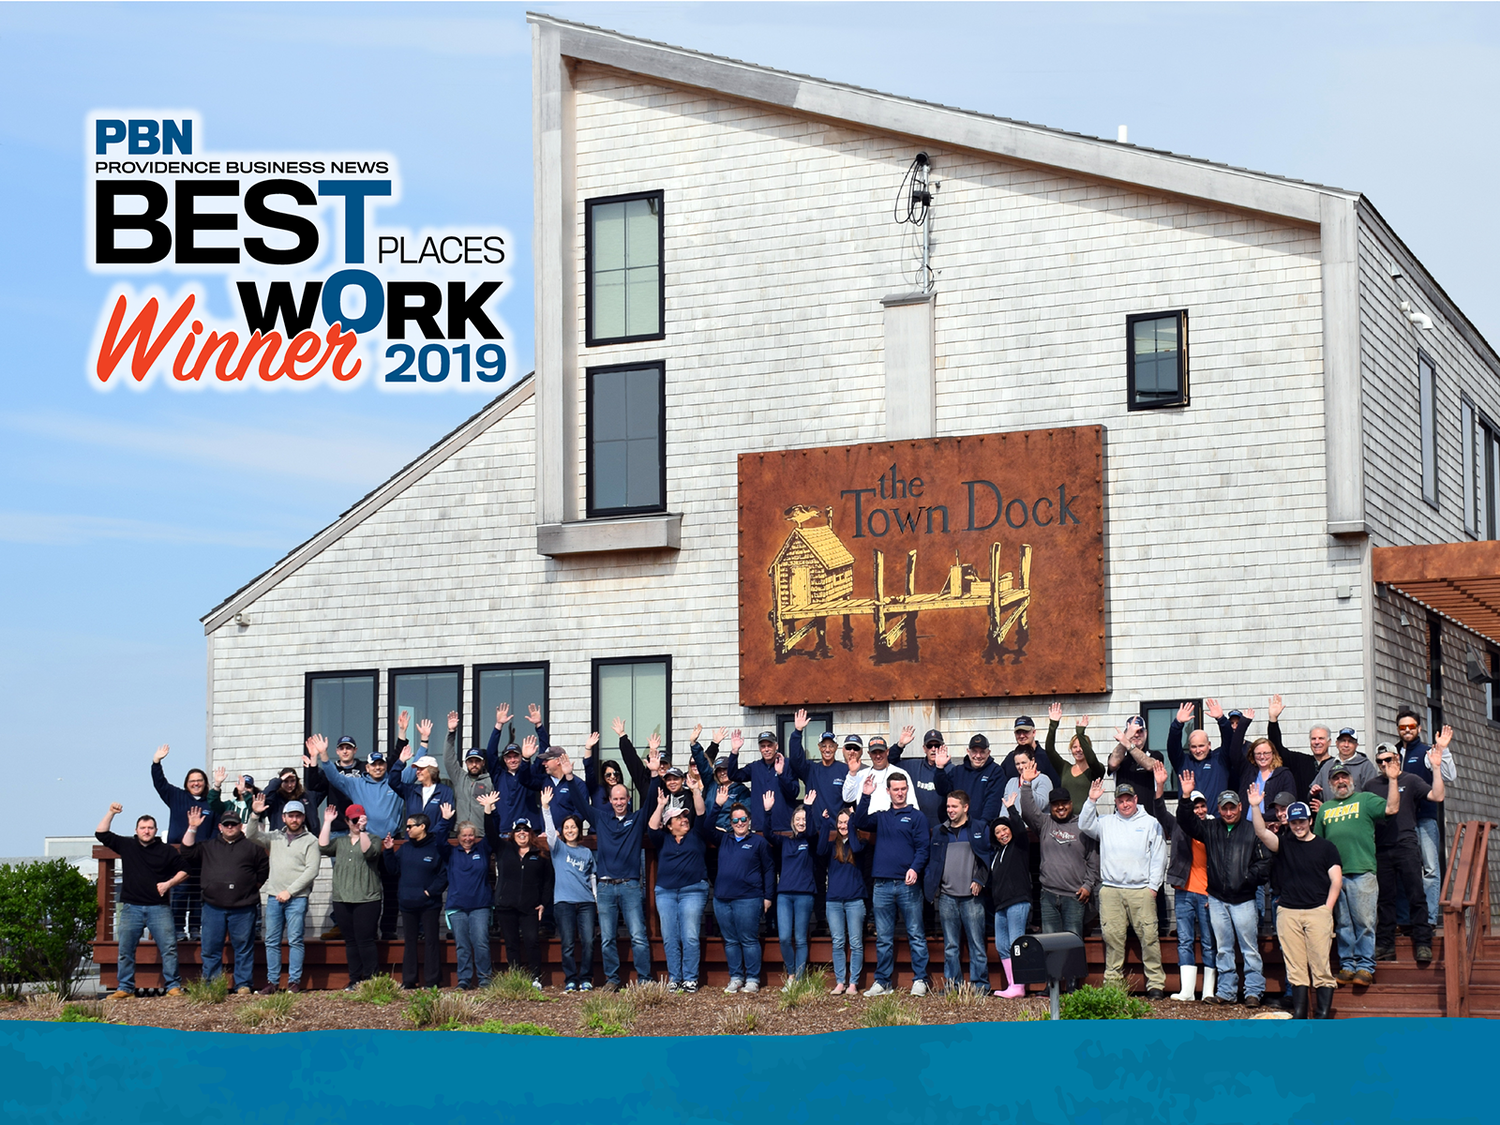 The Town Dock Named Best Place to Work for the Second Year in a Row